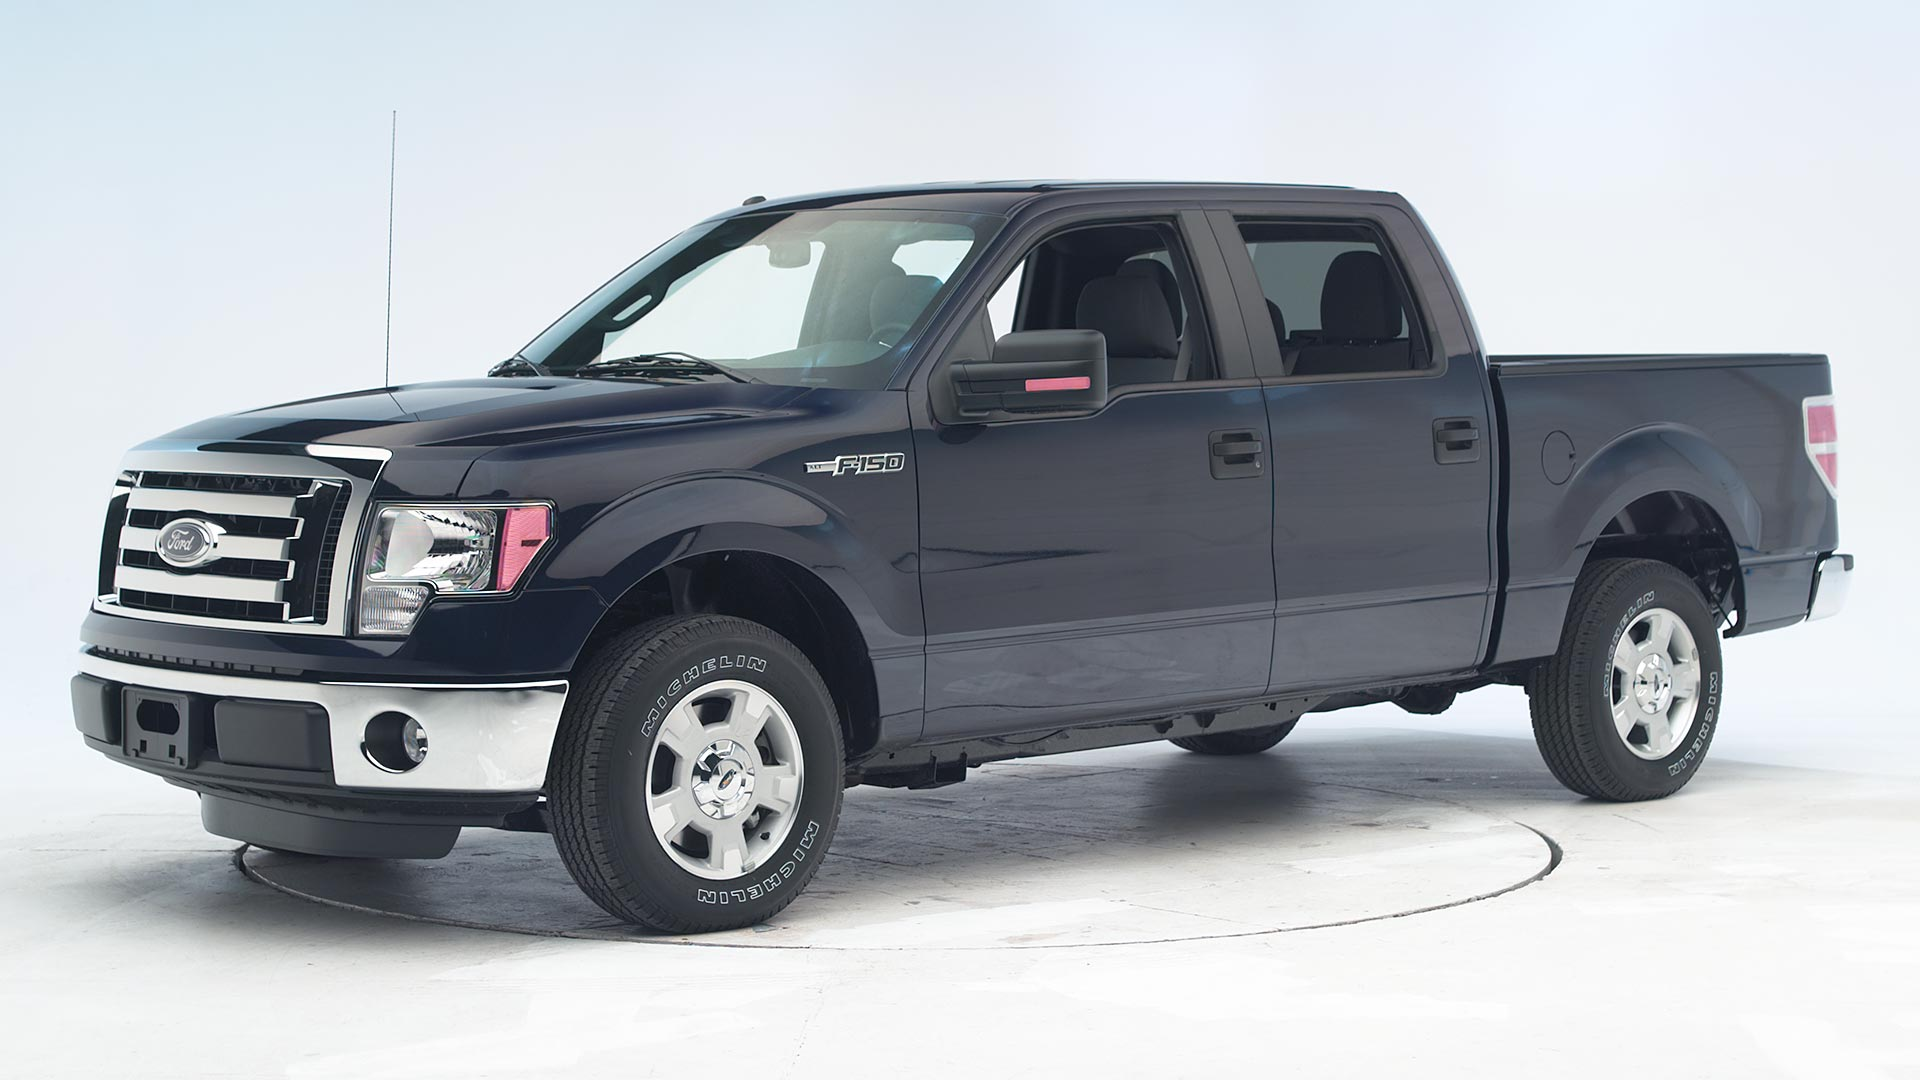 2012 Ford F-150 Crew cab pickup